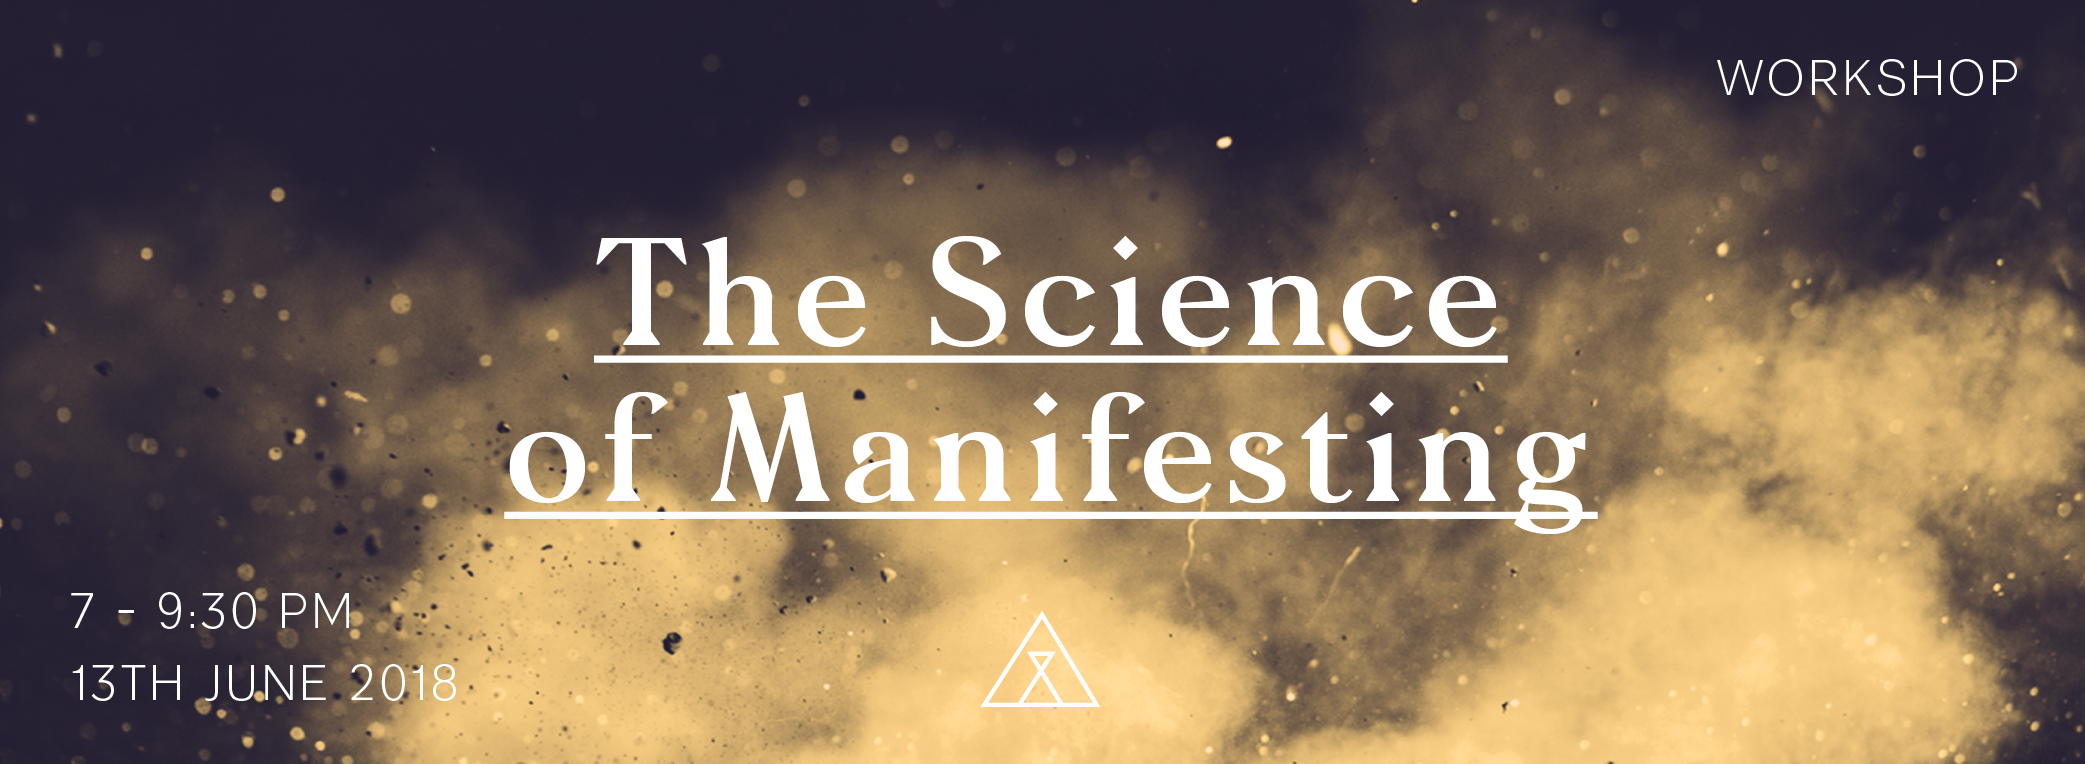 The Science of Manifesting_Web Header1